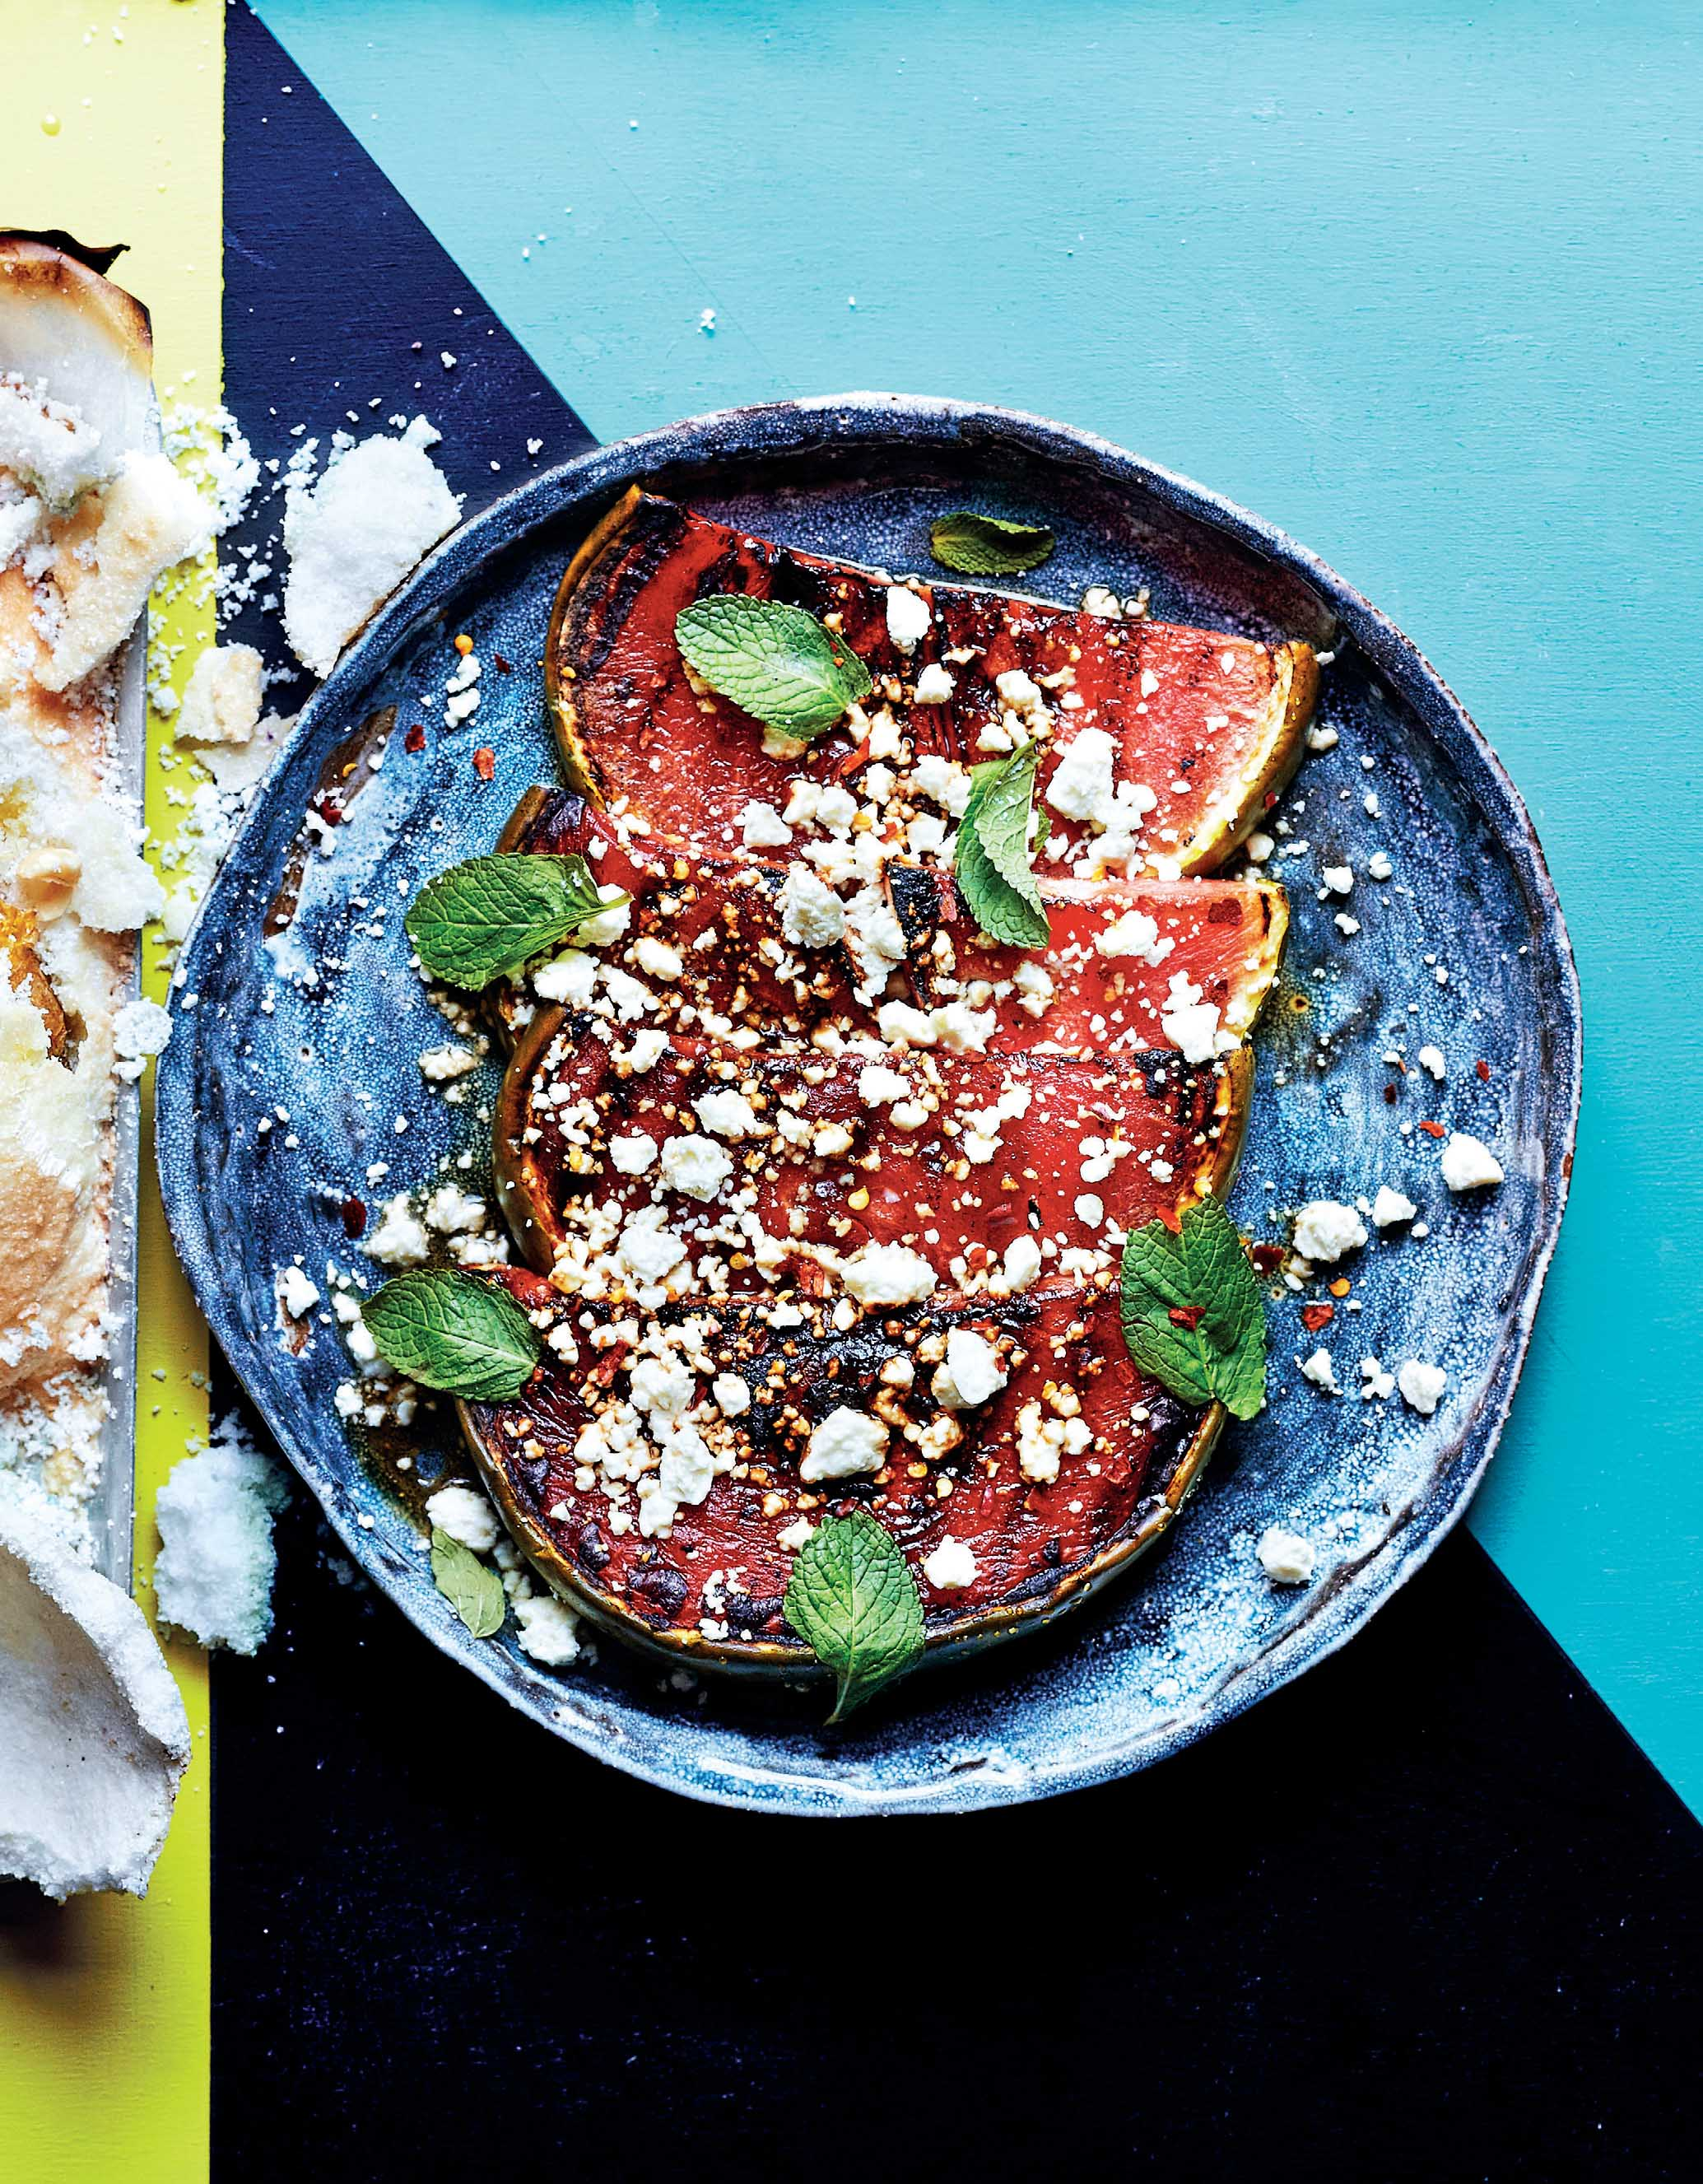 Barbecued watermelon, mint & queso fresco